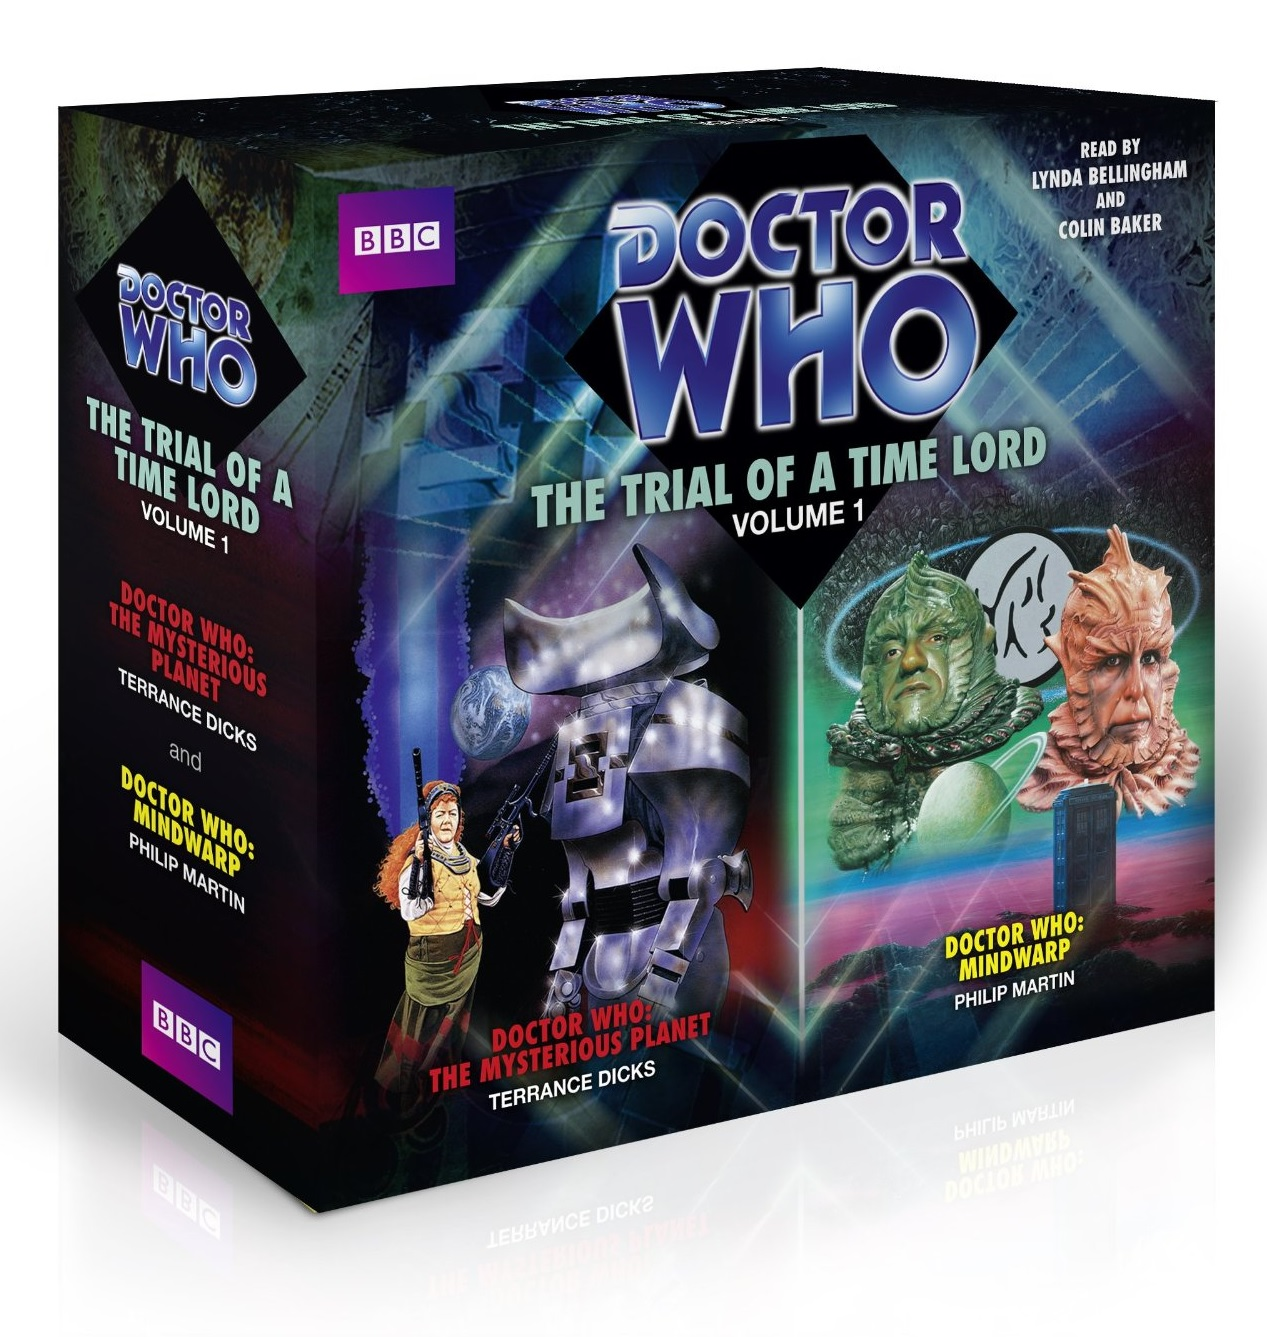 Reviewed Trial Of A Time Lord Volume 1 Audiobook Boxset